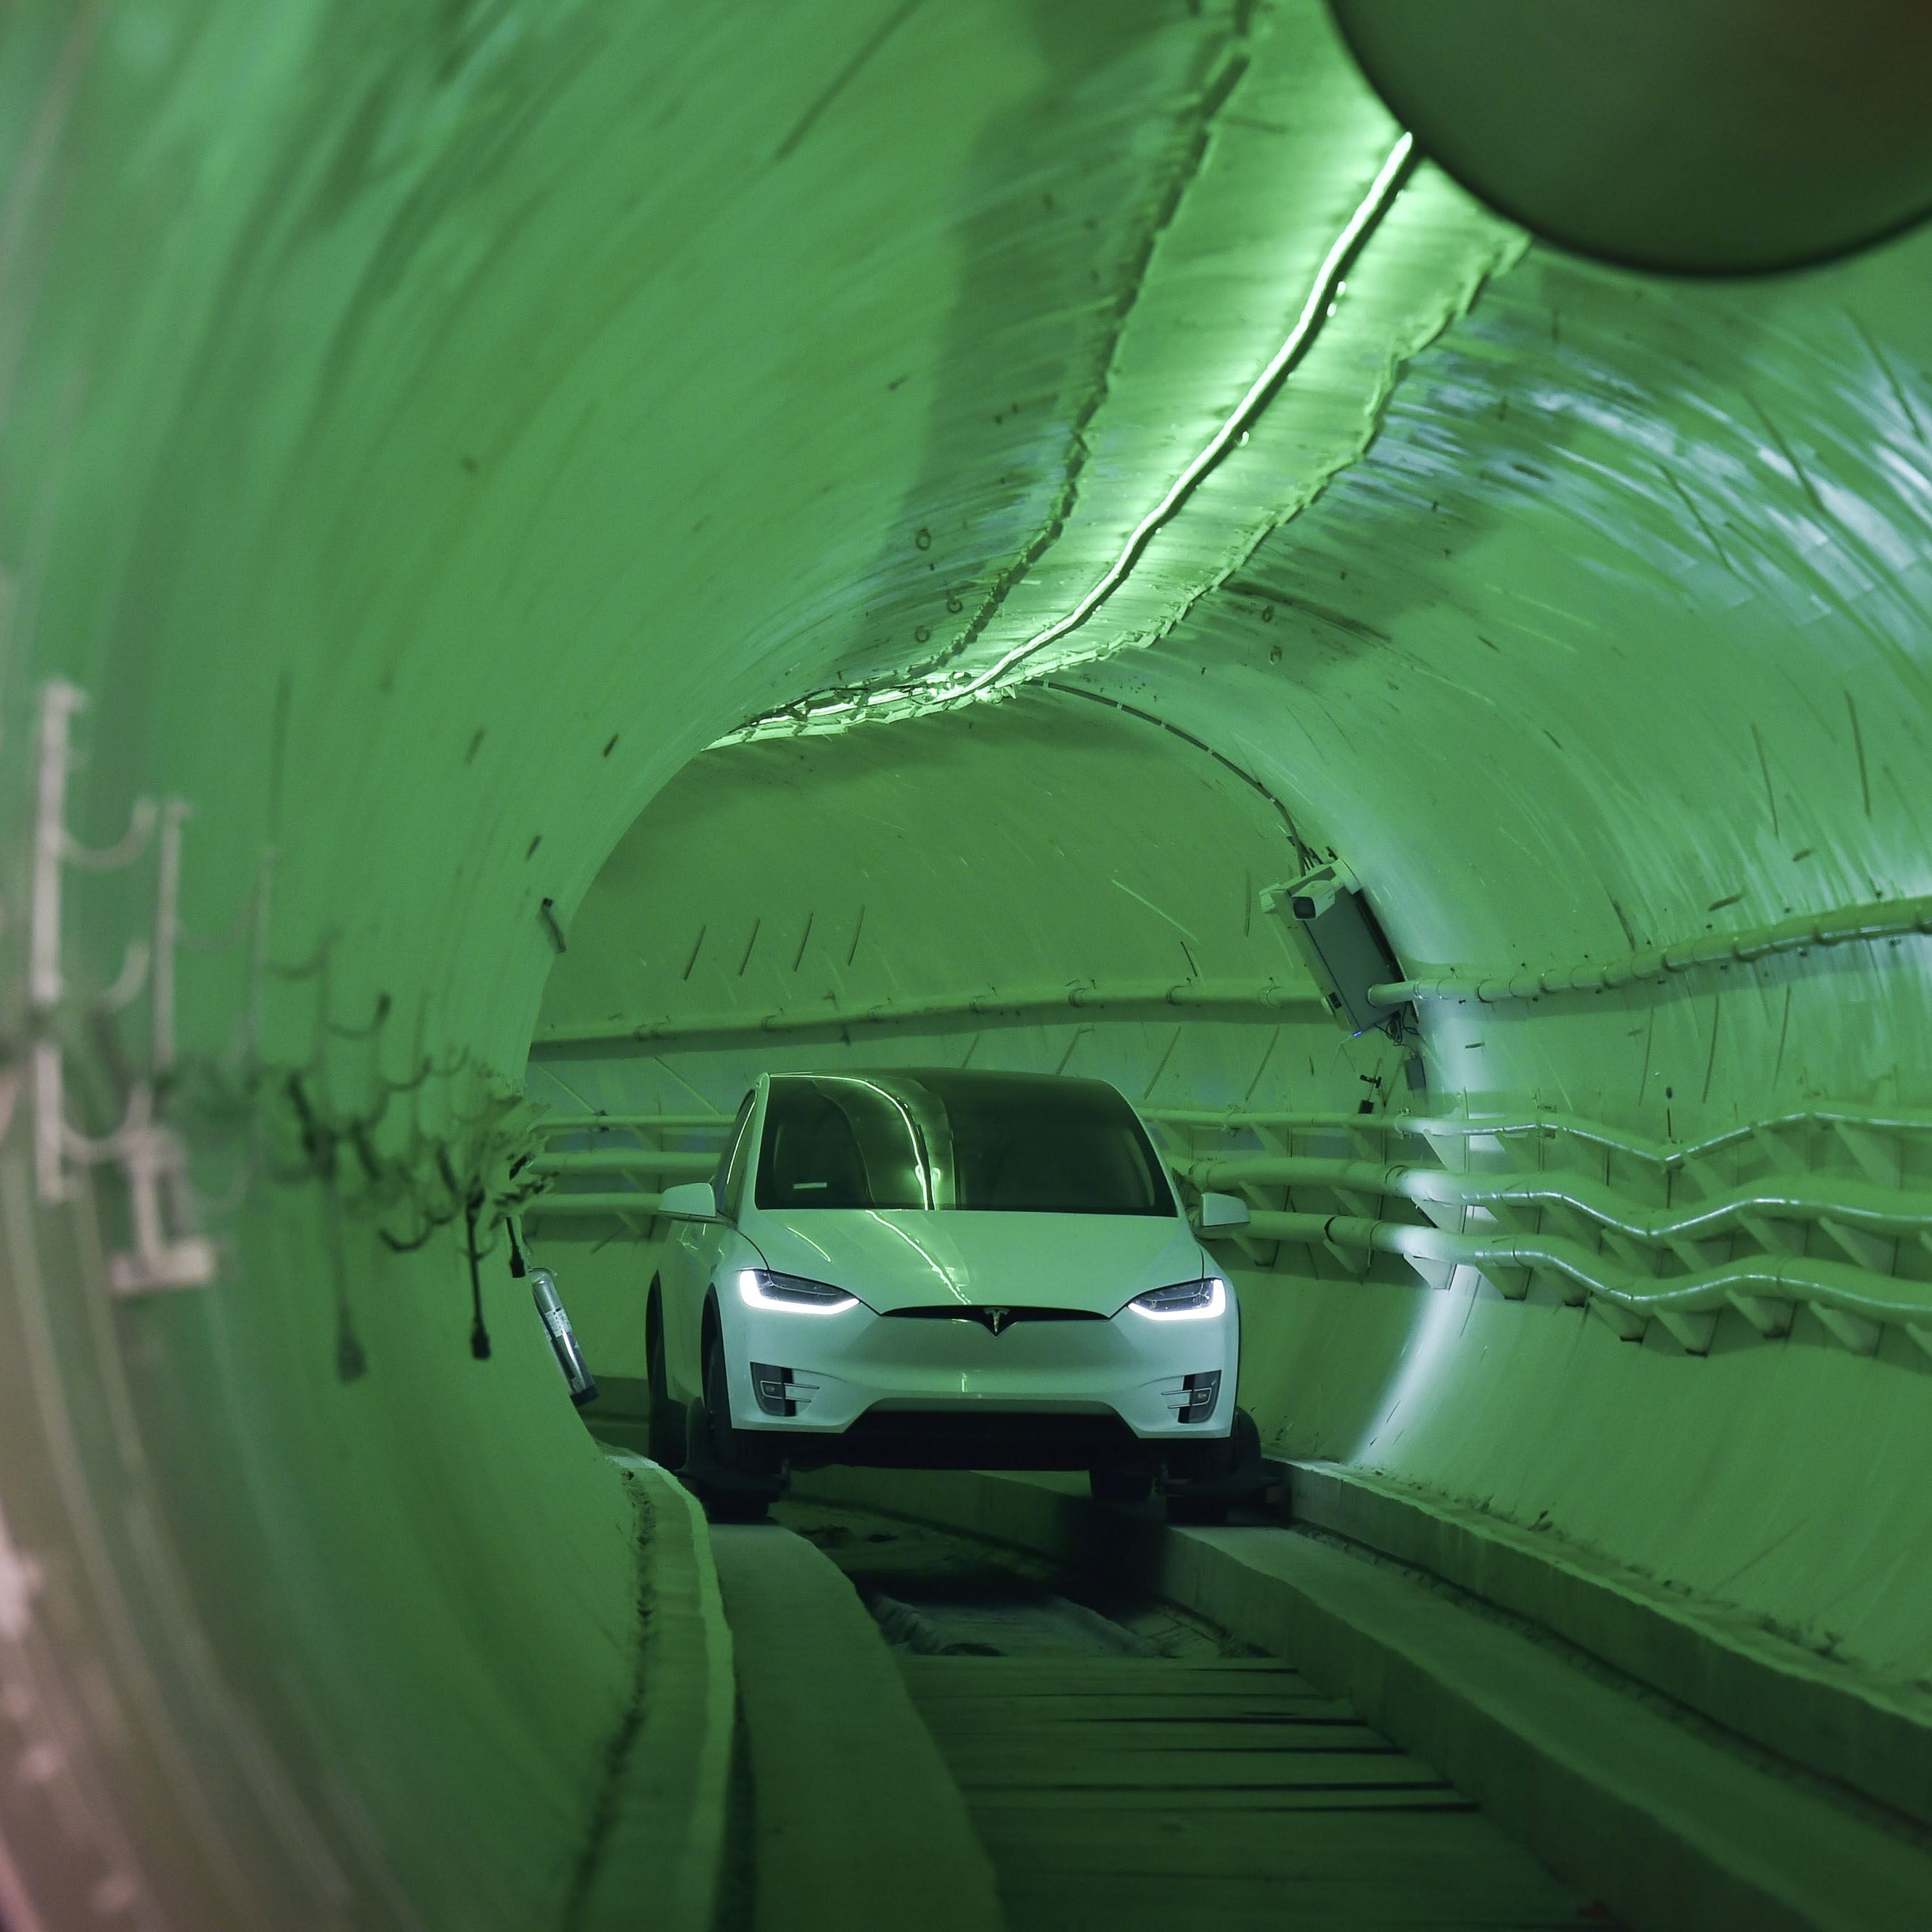 Giant tunnels underneath Las Vegas? Elon Musk wants them, and so does the city